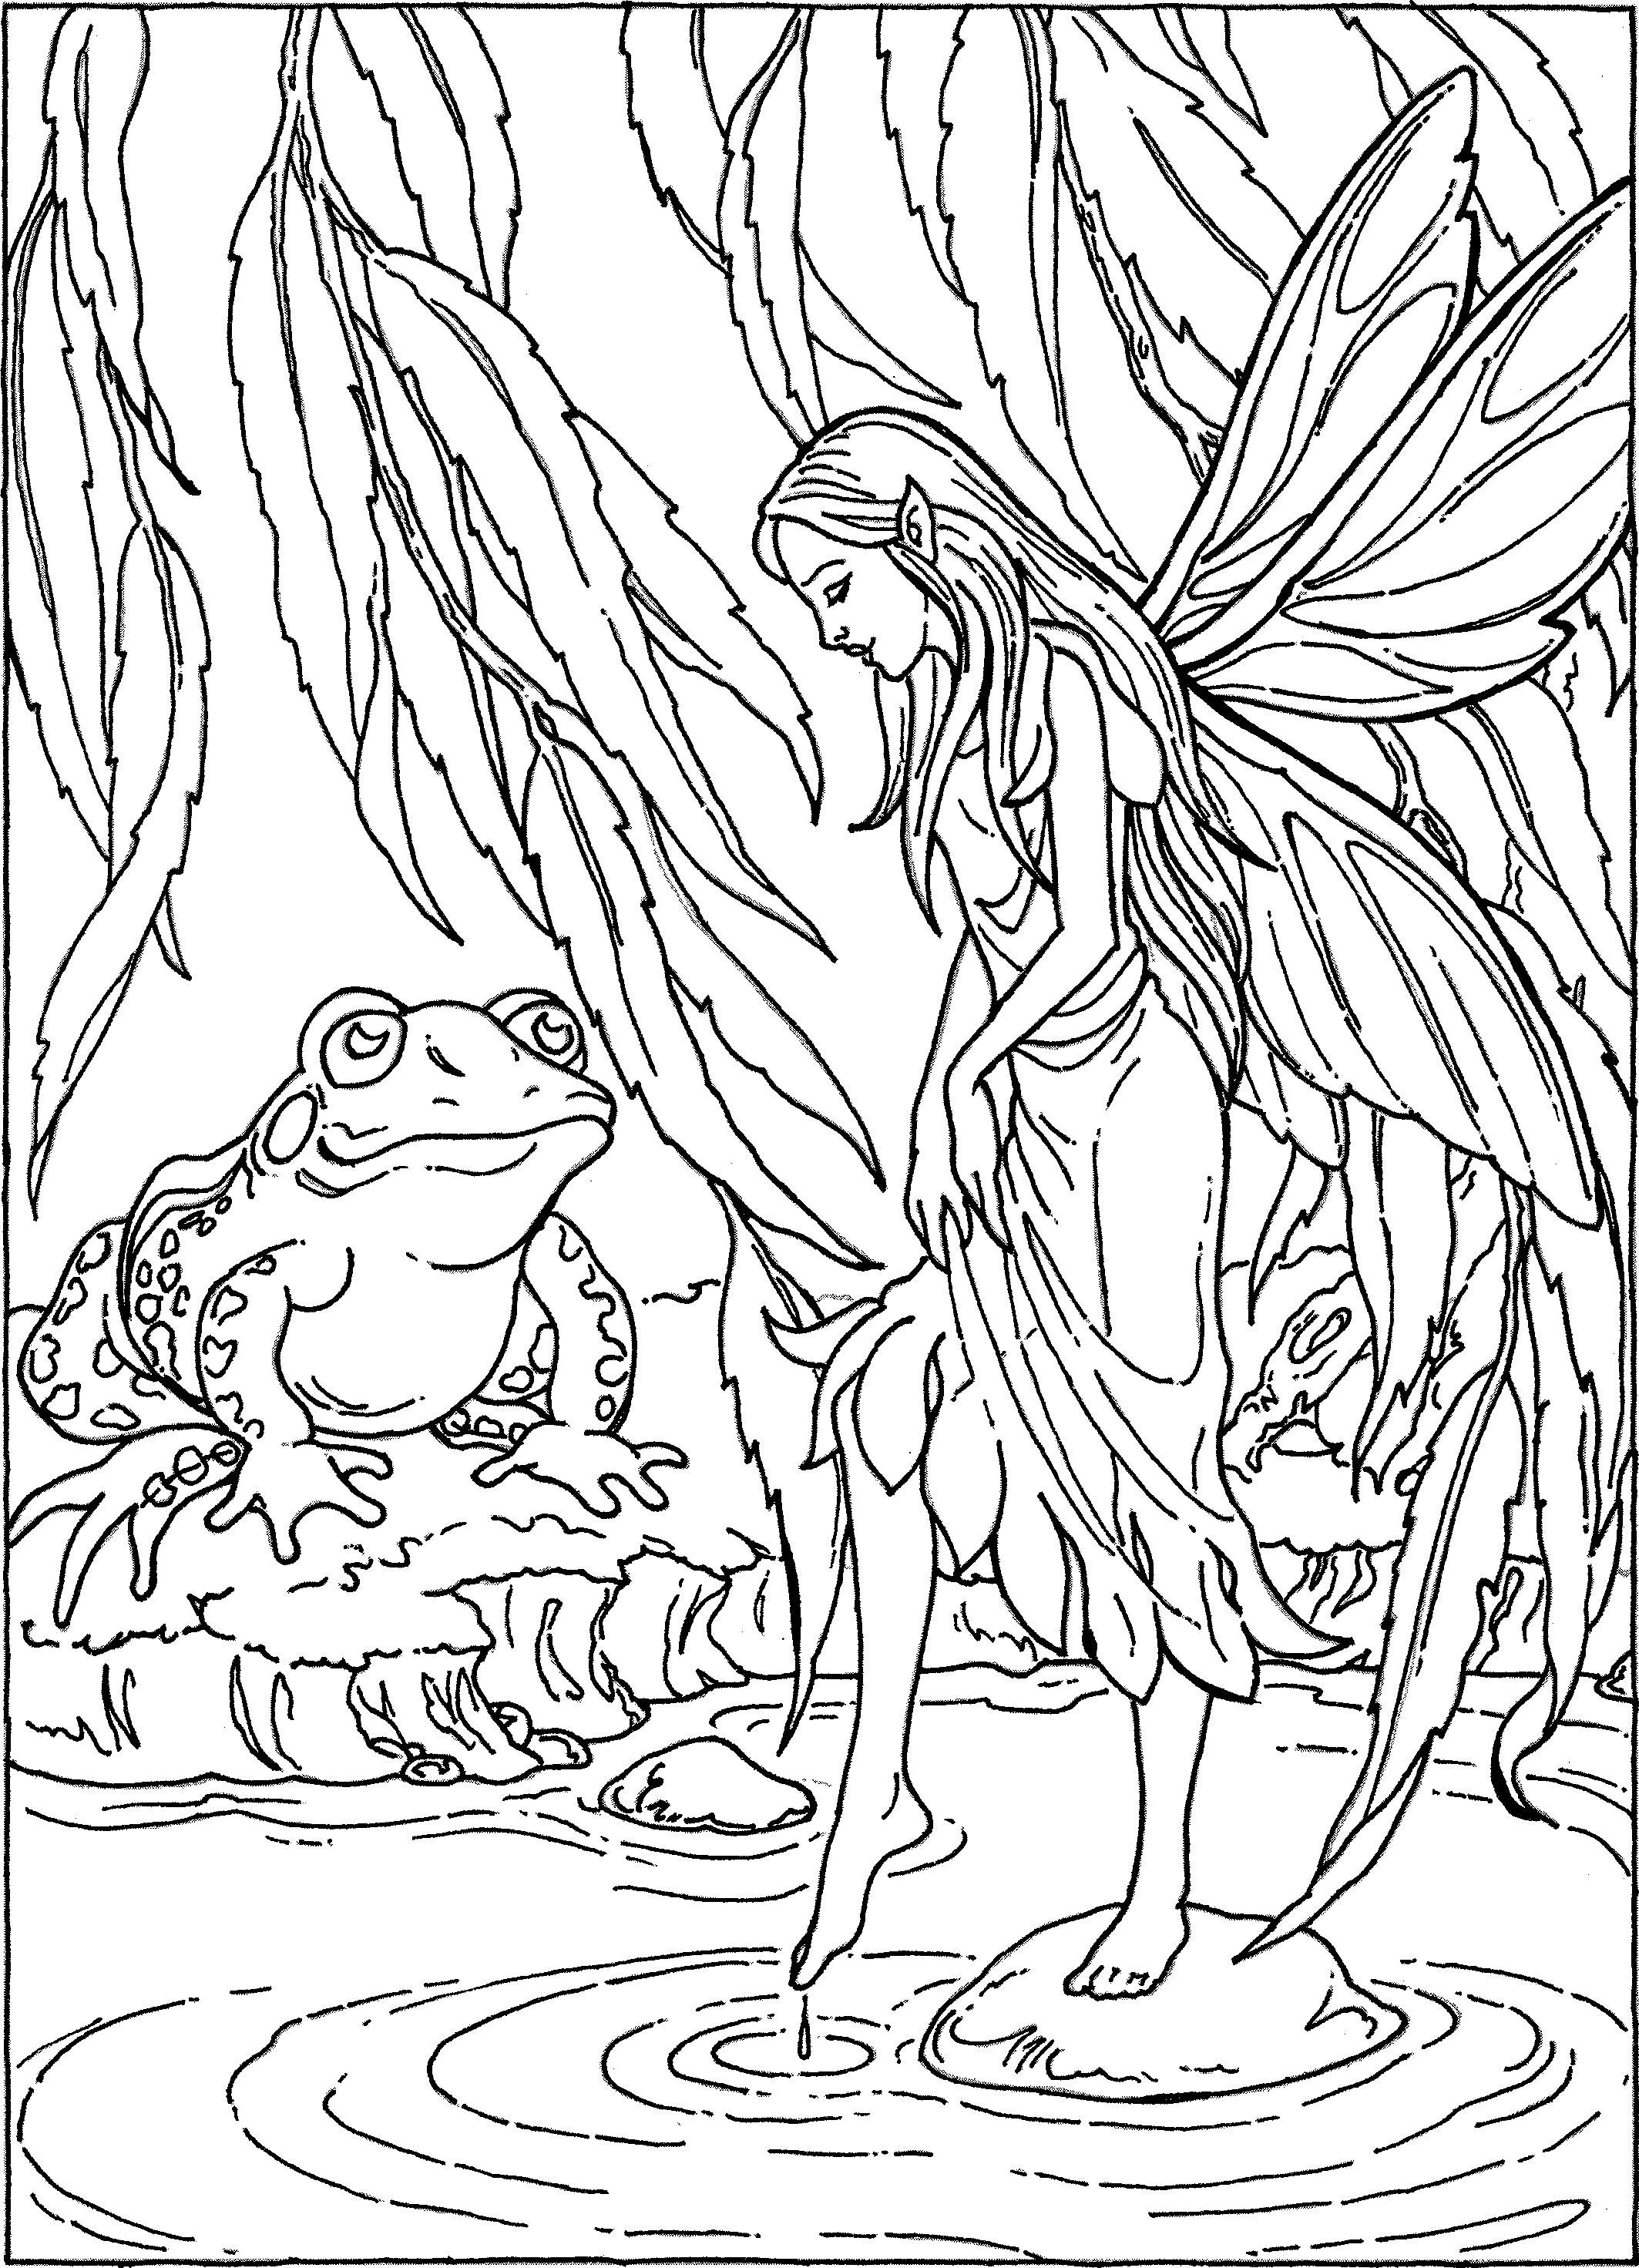 fairy and pond frog coloring page colouring fairies